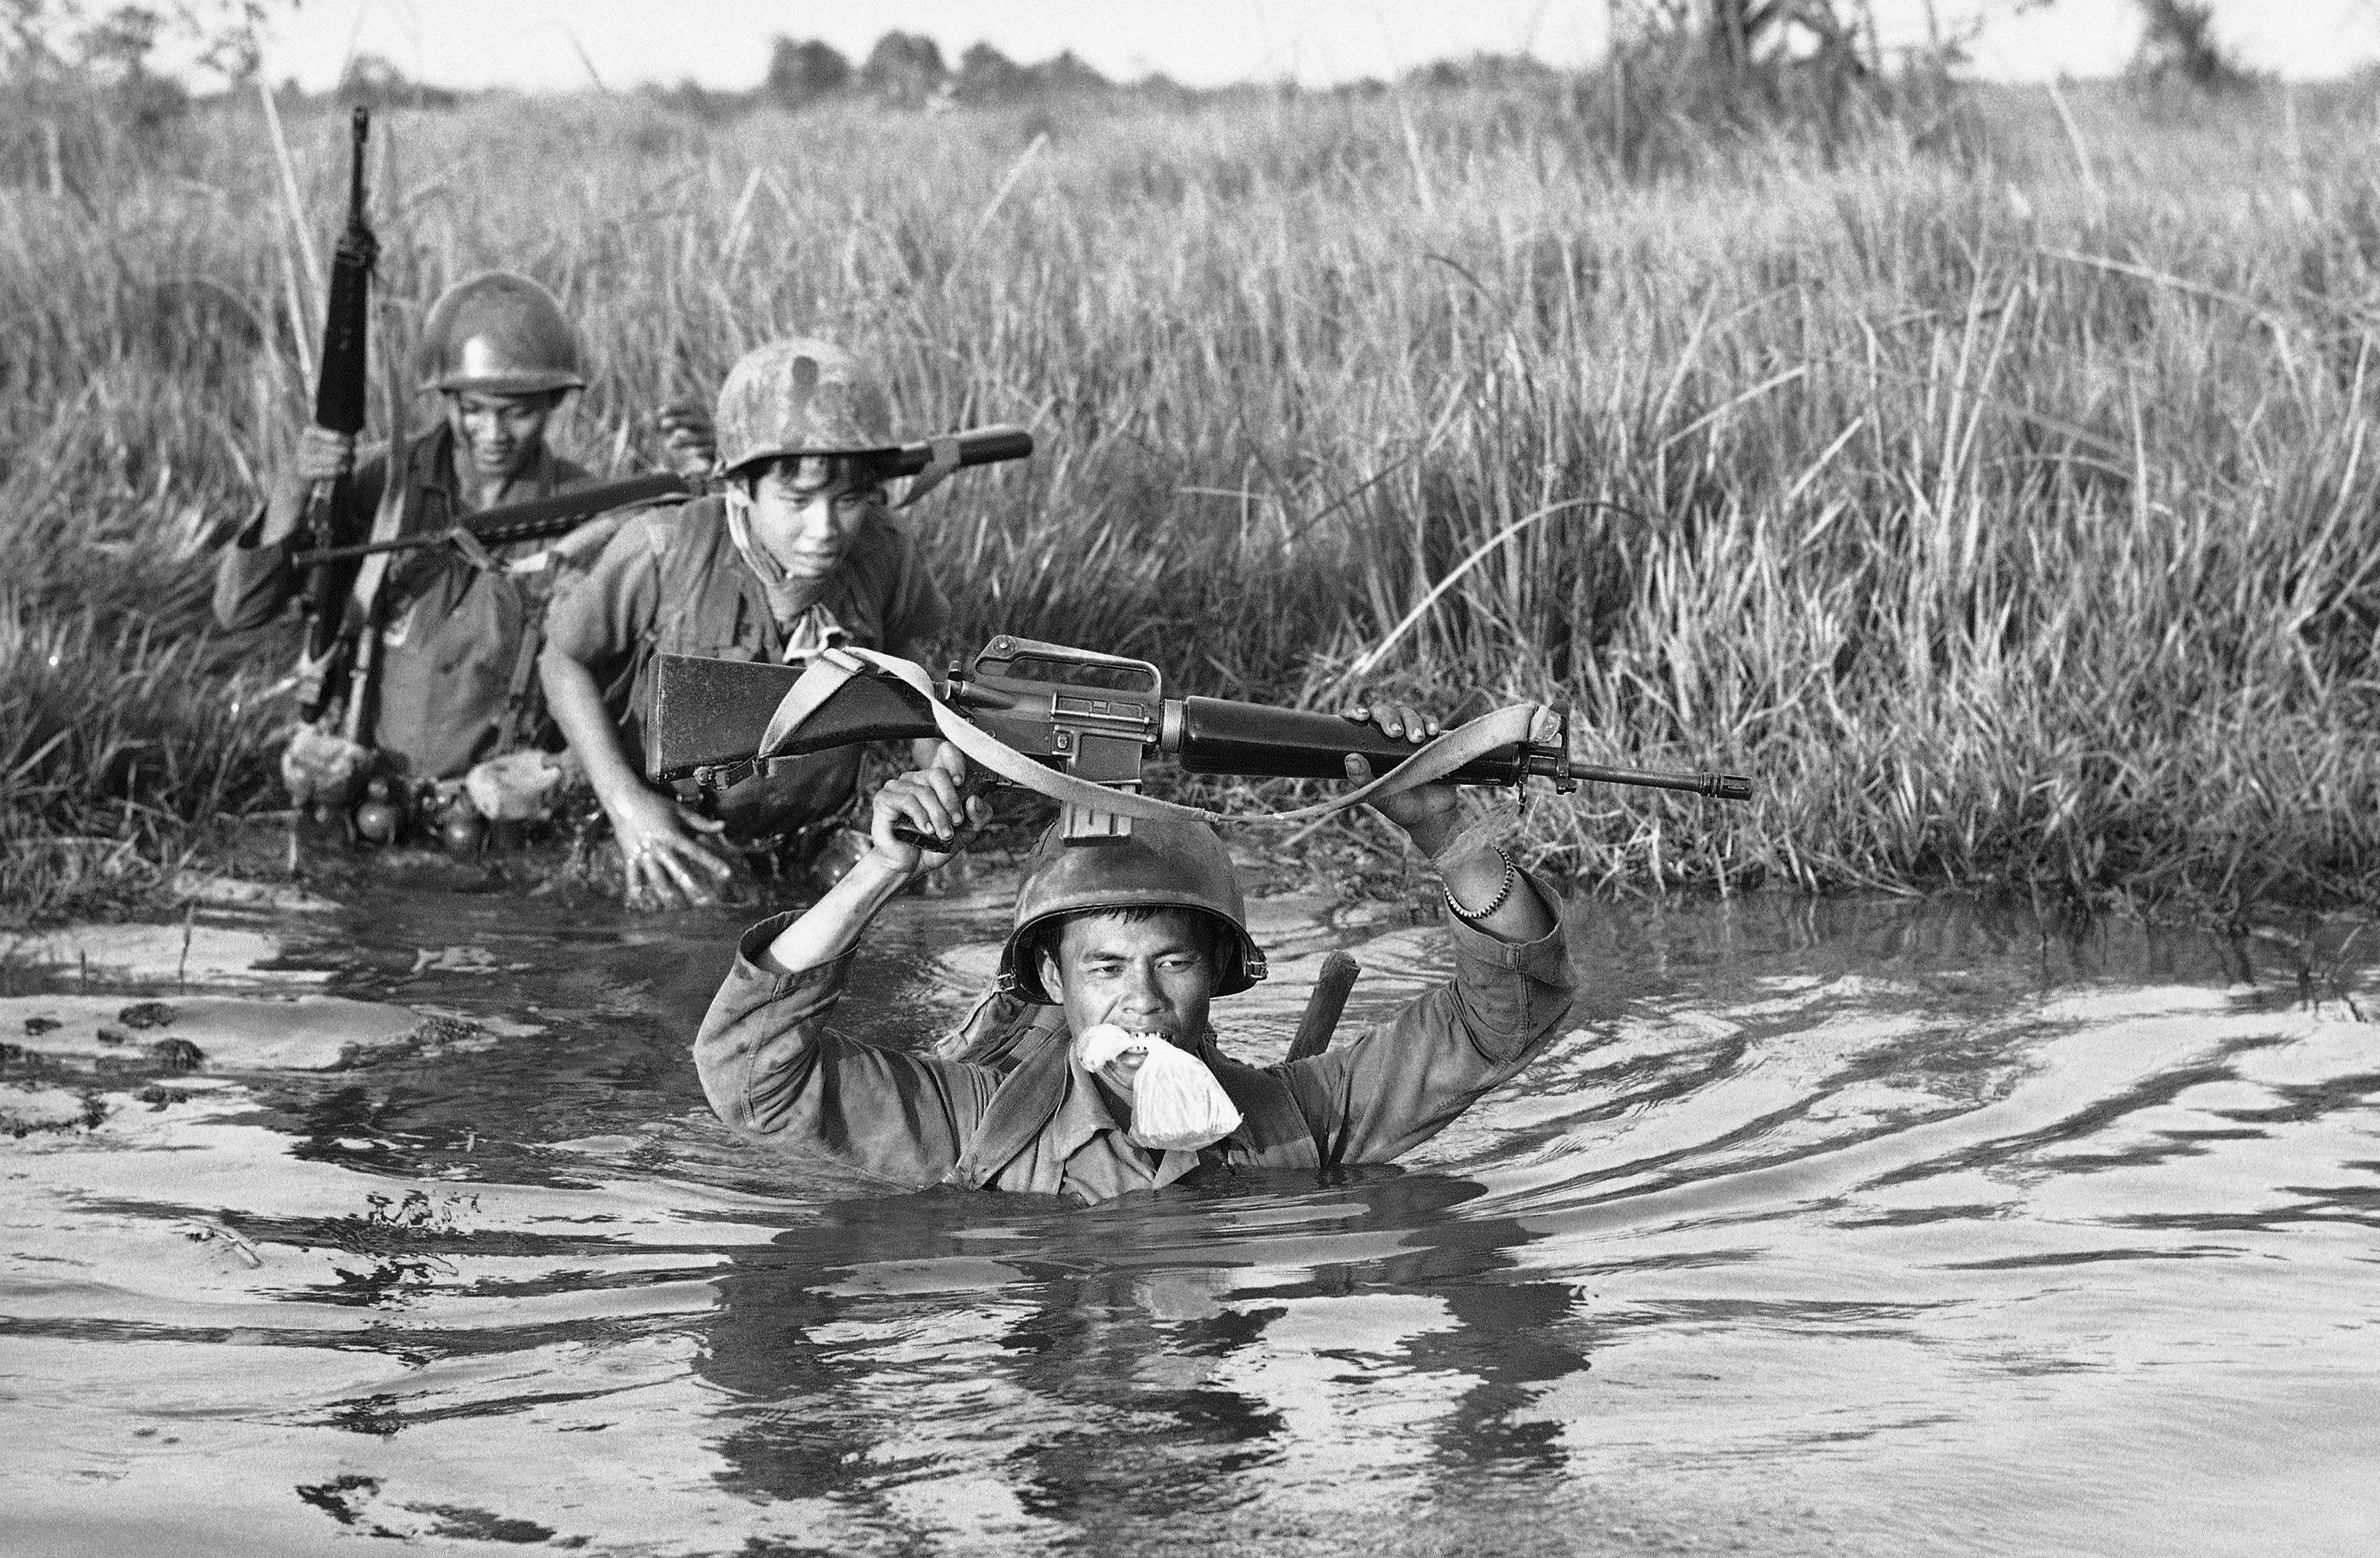 In this March 11, 1972, file photo, a South Vietnamese soldier holds his personal belongings in a plastic bag between his teeth as his unit crosses a muddy Mekong Delta stream in Vietnam near the Cambodian border. His unit was charged with stemming Communist infiltration from Cambodia into South Vietnam in the heavily populated Mekong Delta area. NICK UT/THE ASSOCIATED PRESS